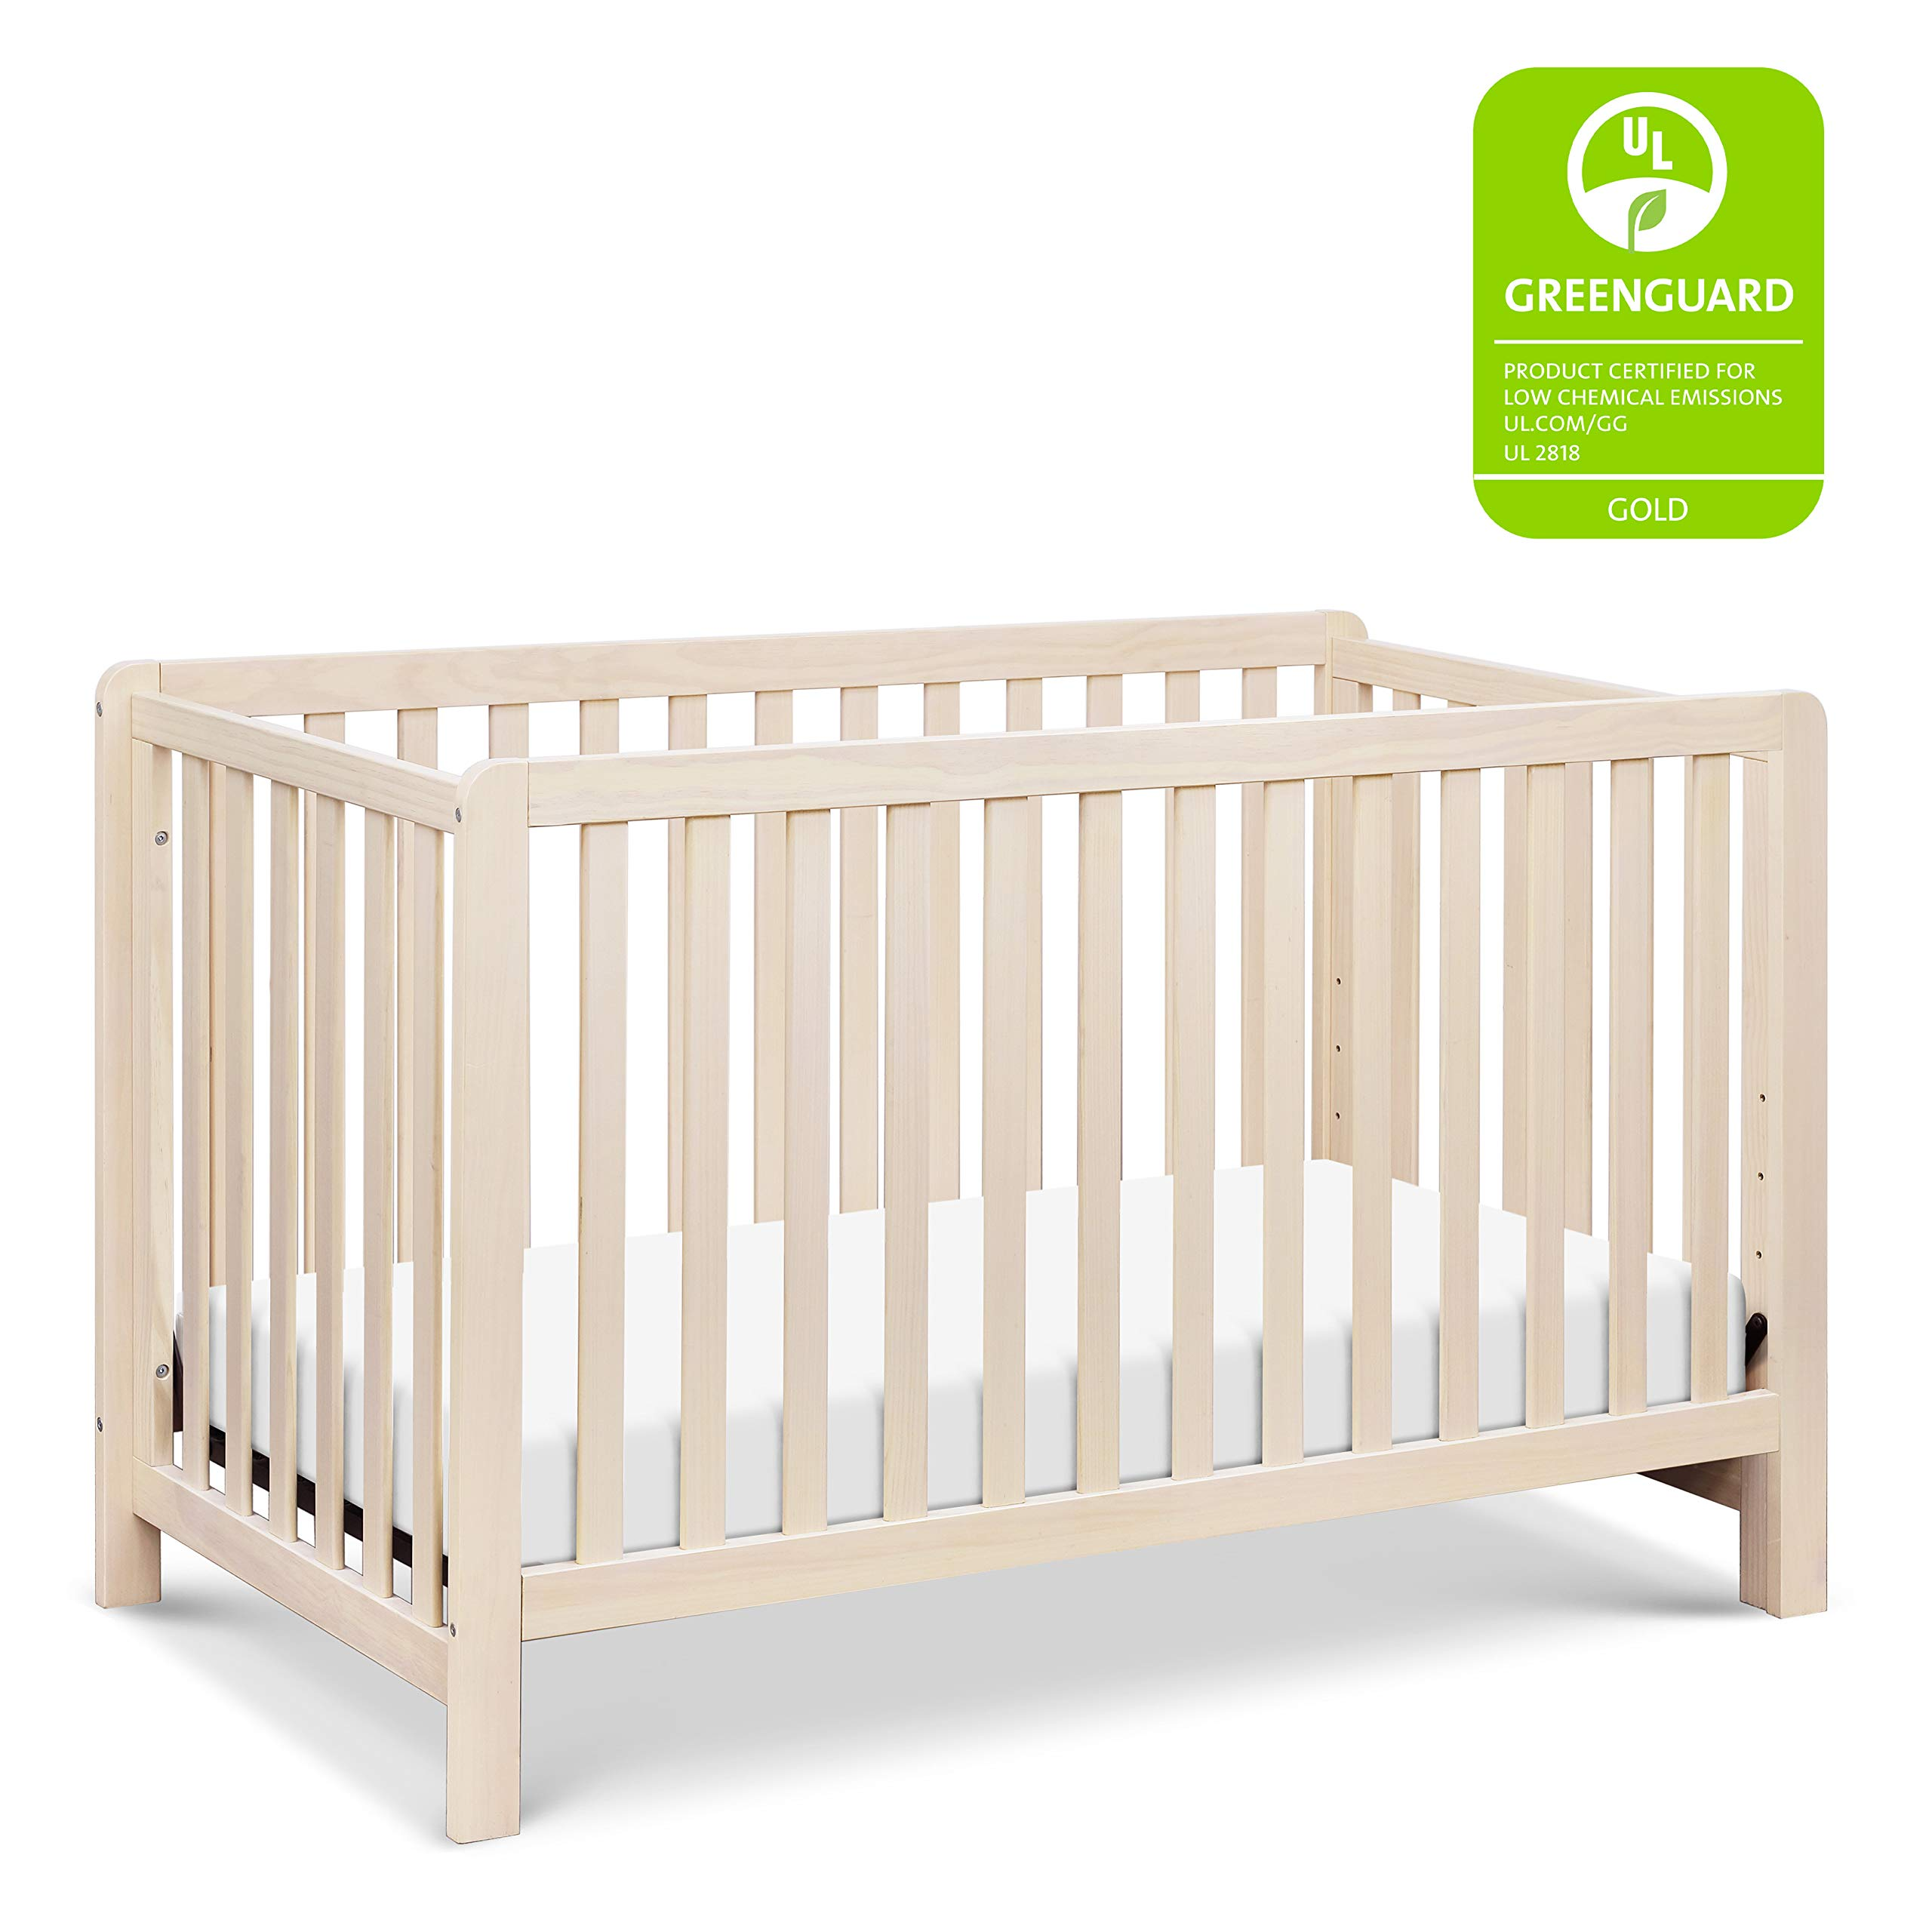 Carter's by DaVinci Colby 4-in-1 Low-Profile Convertible Crib in Washed Natural | Greenguard Gold Certified by Carter's by DaVinci